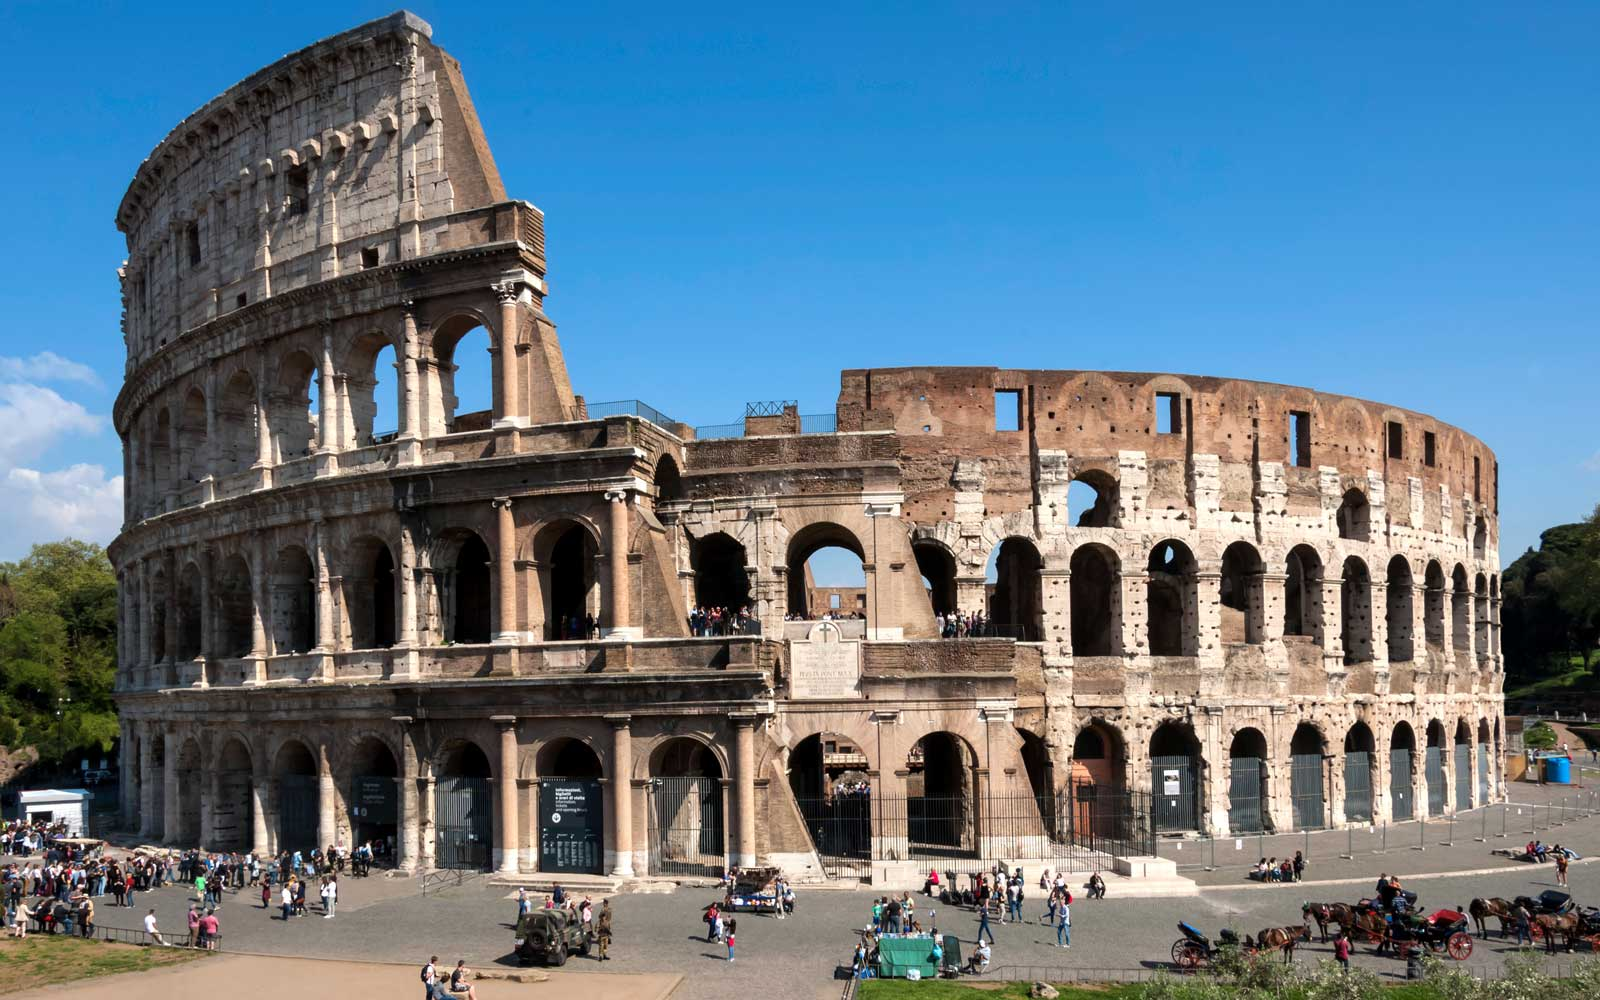 Rome's Colosseum was the most popular tourist attraction of 2018.